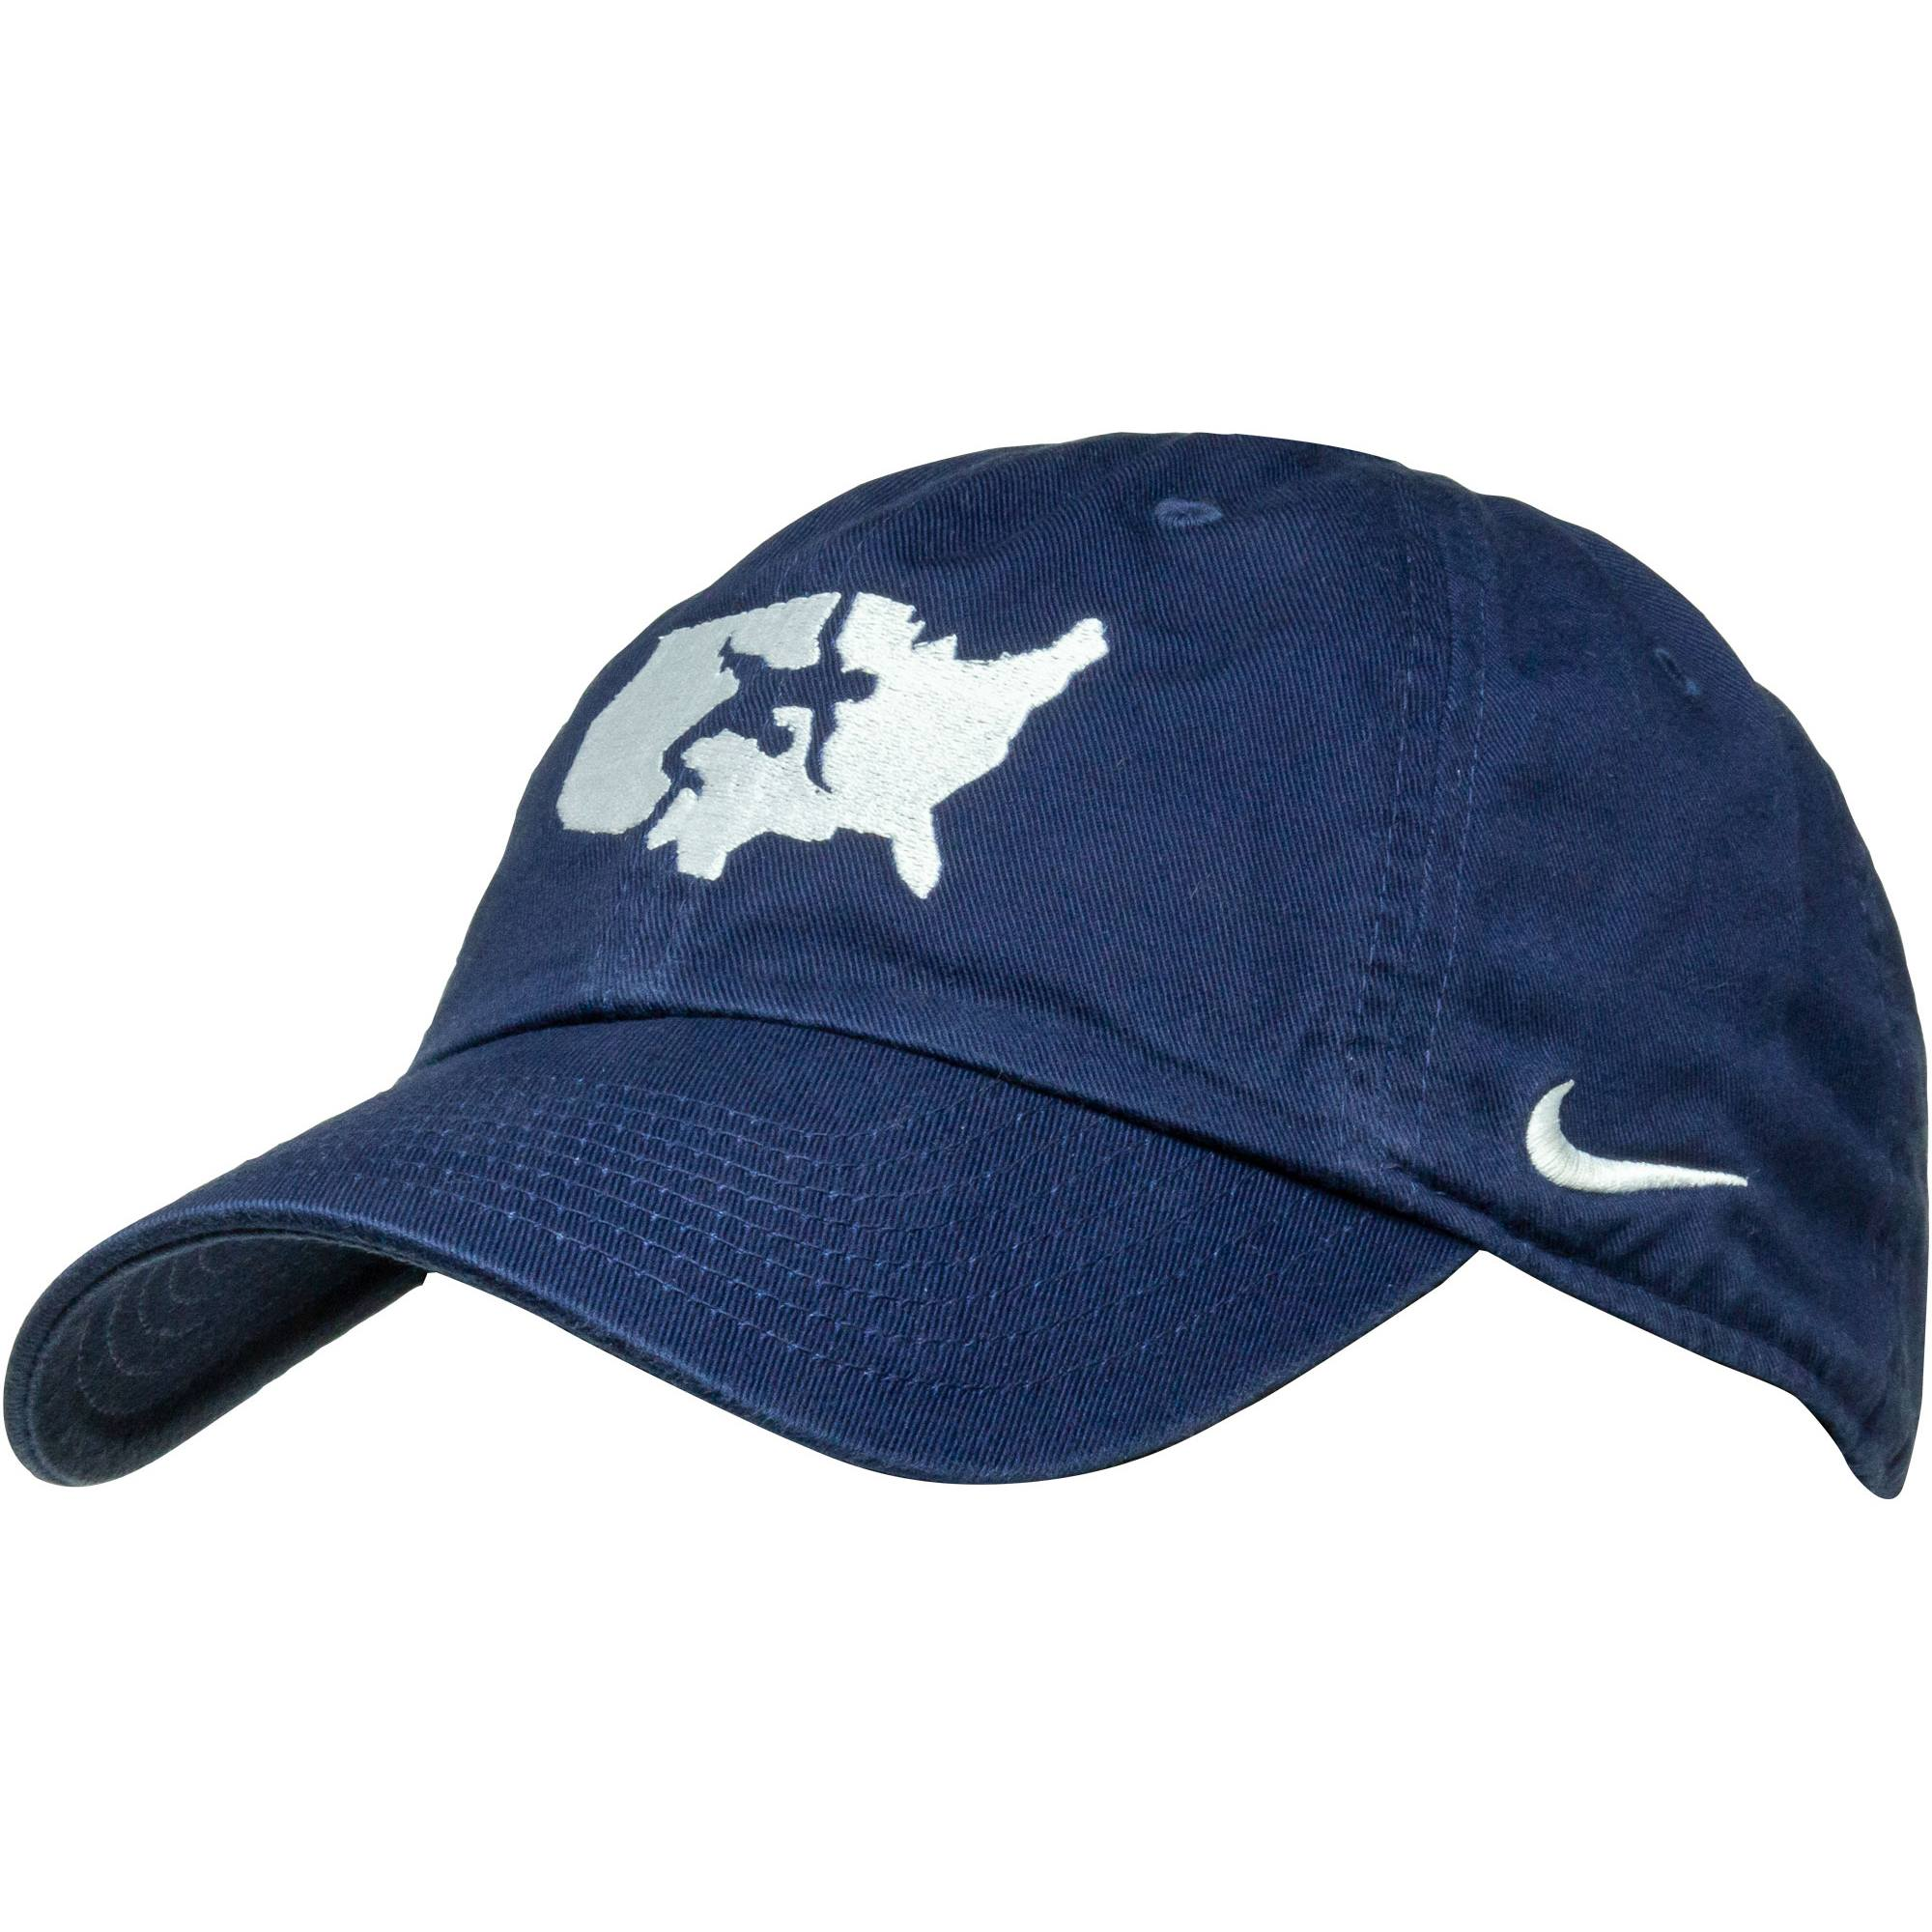 c9139e4bc Nike USAWrestling Cap Ask us a question about this product